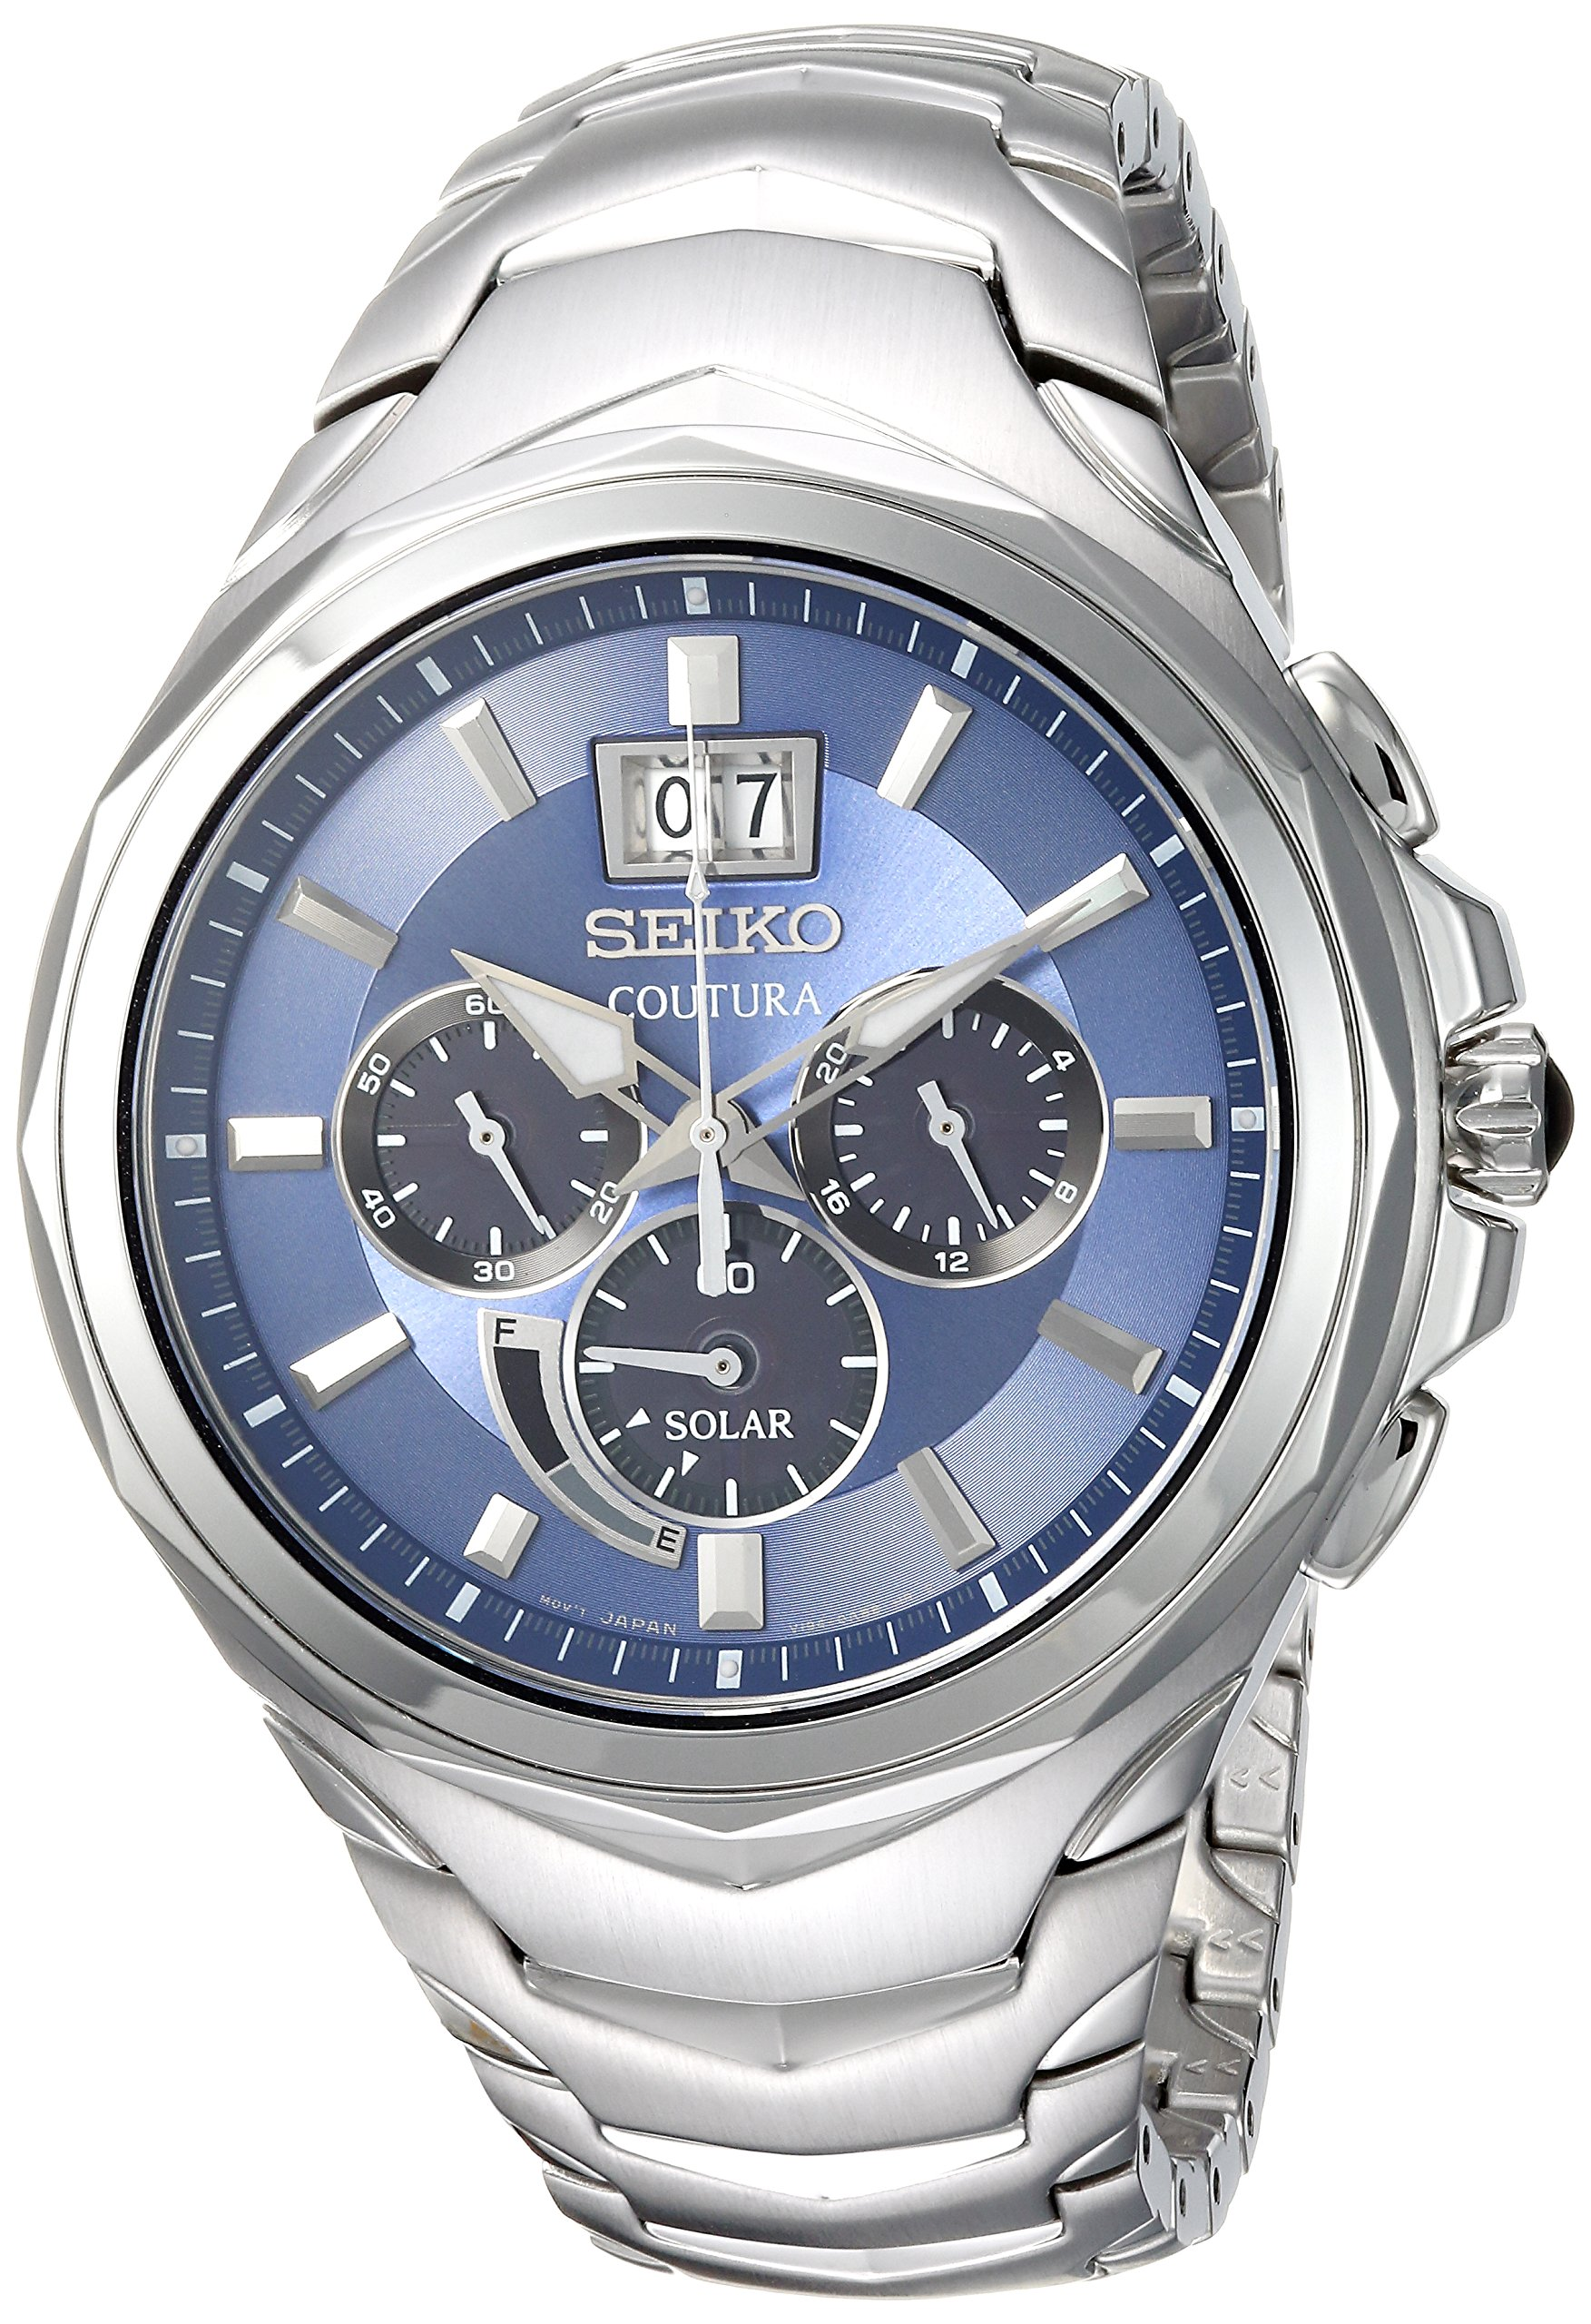 Seiko Men's 'COUTURA CHRONOGRAPH' Quartz Stainless Steel Casual Watch, Color:Silver-Toned (Model: SSC641) by Seiko